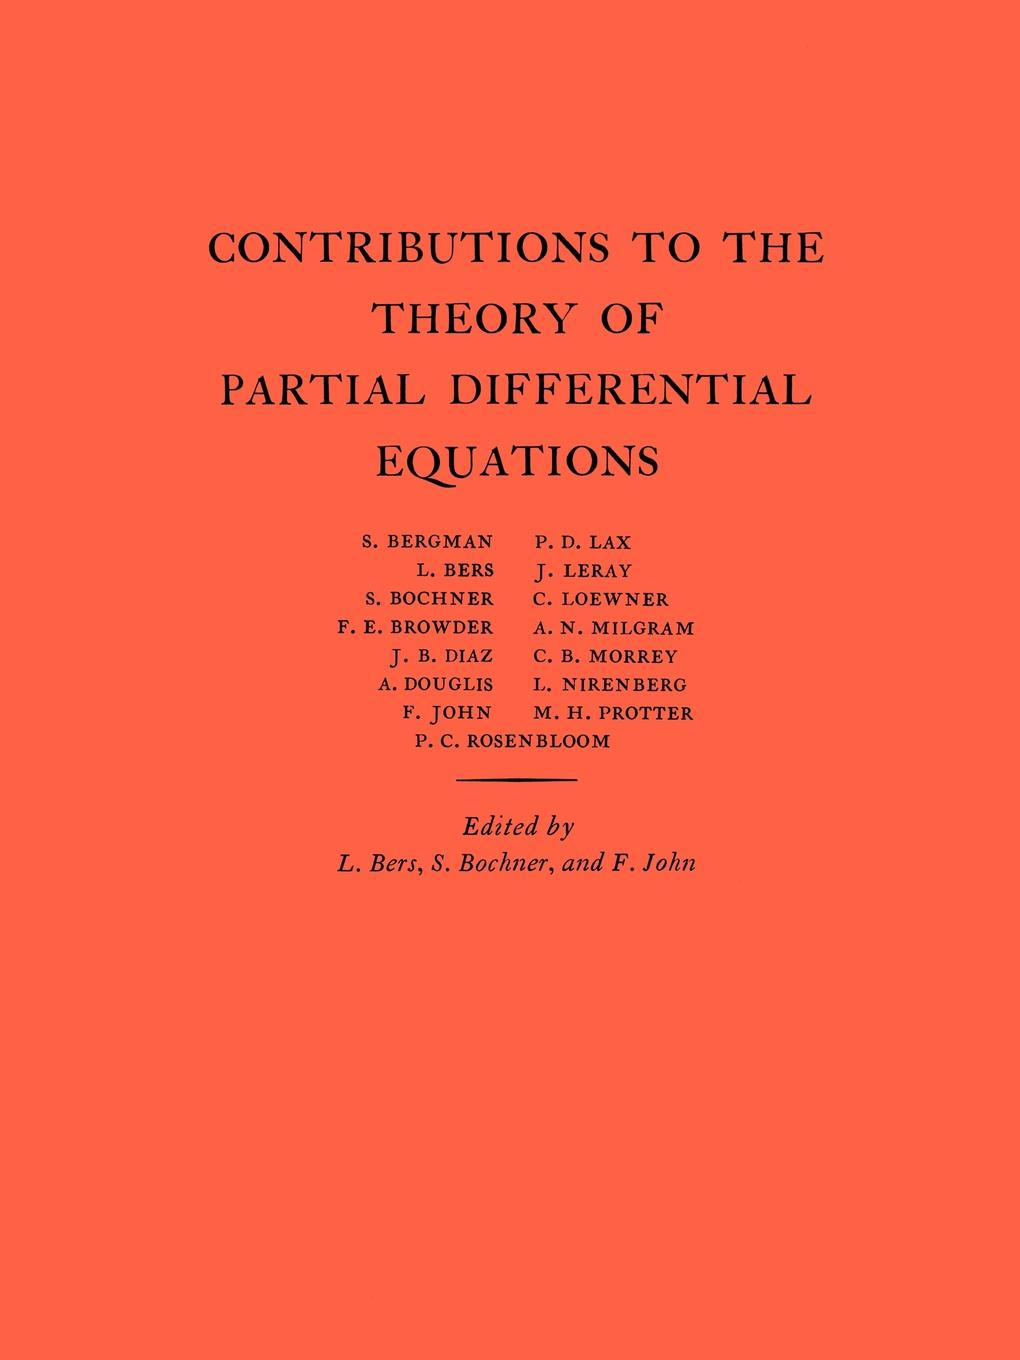 Lipman Bers, Salomon Trust, Fritz John Contributions to the Theory of Partial Differential Equations. (AM-33), Volume 33 qualitative theory of differential equations